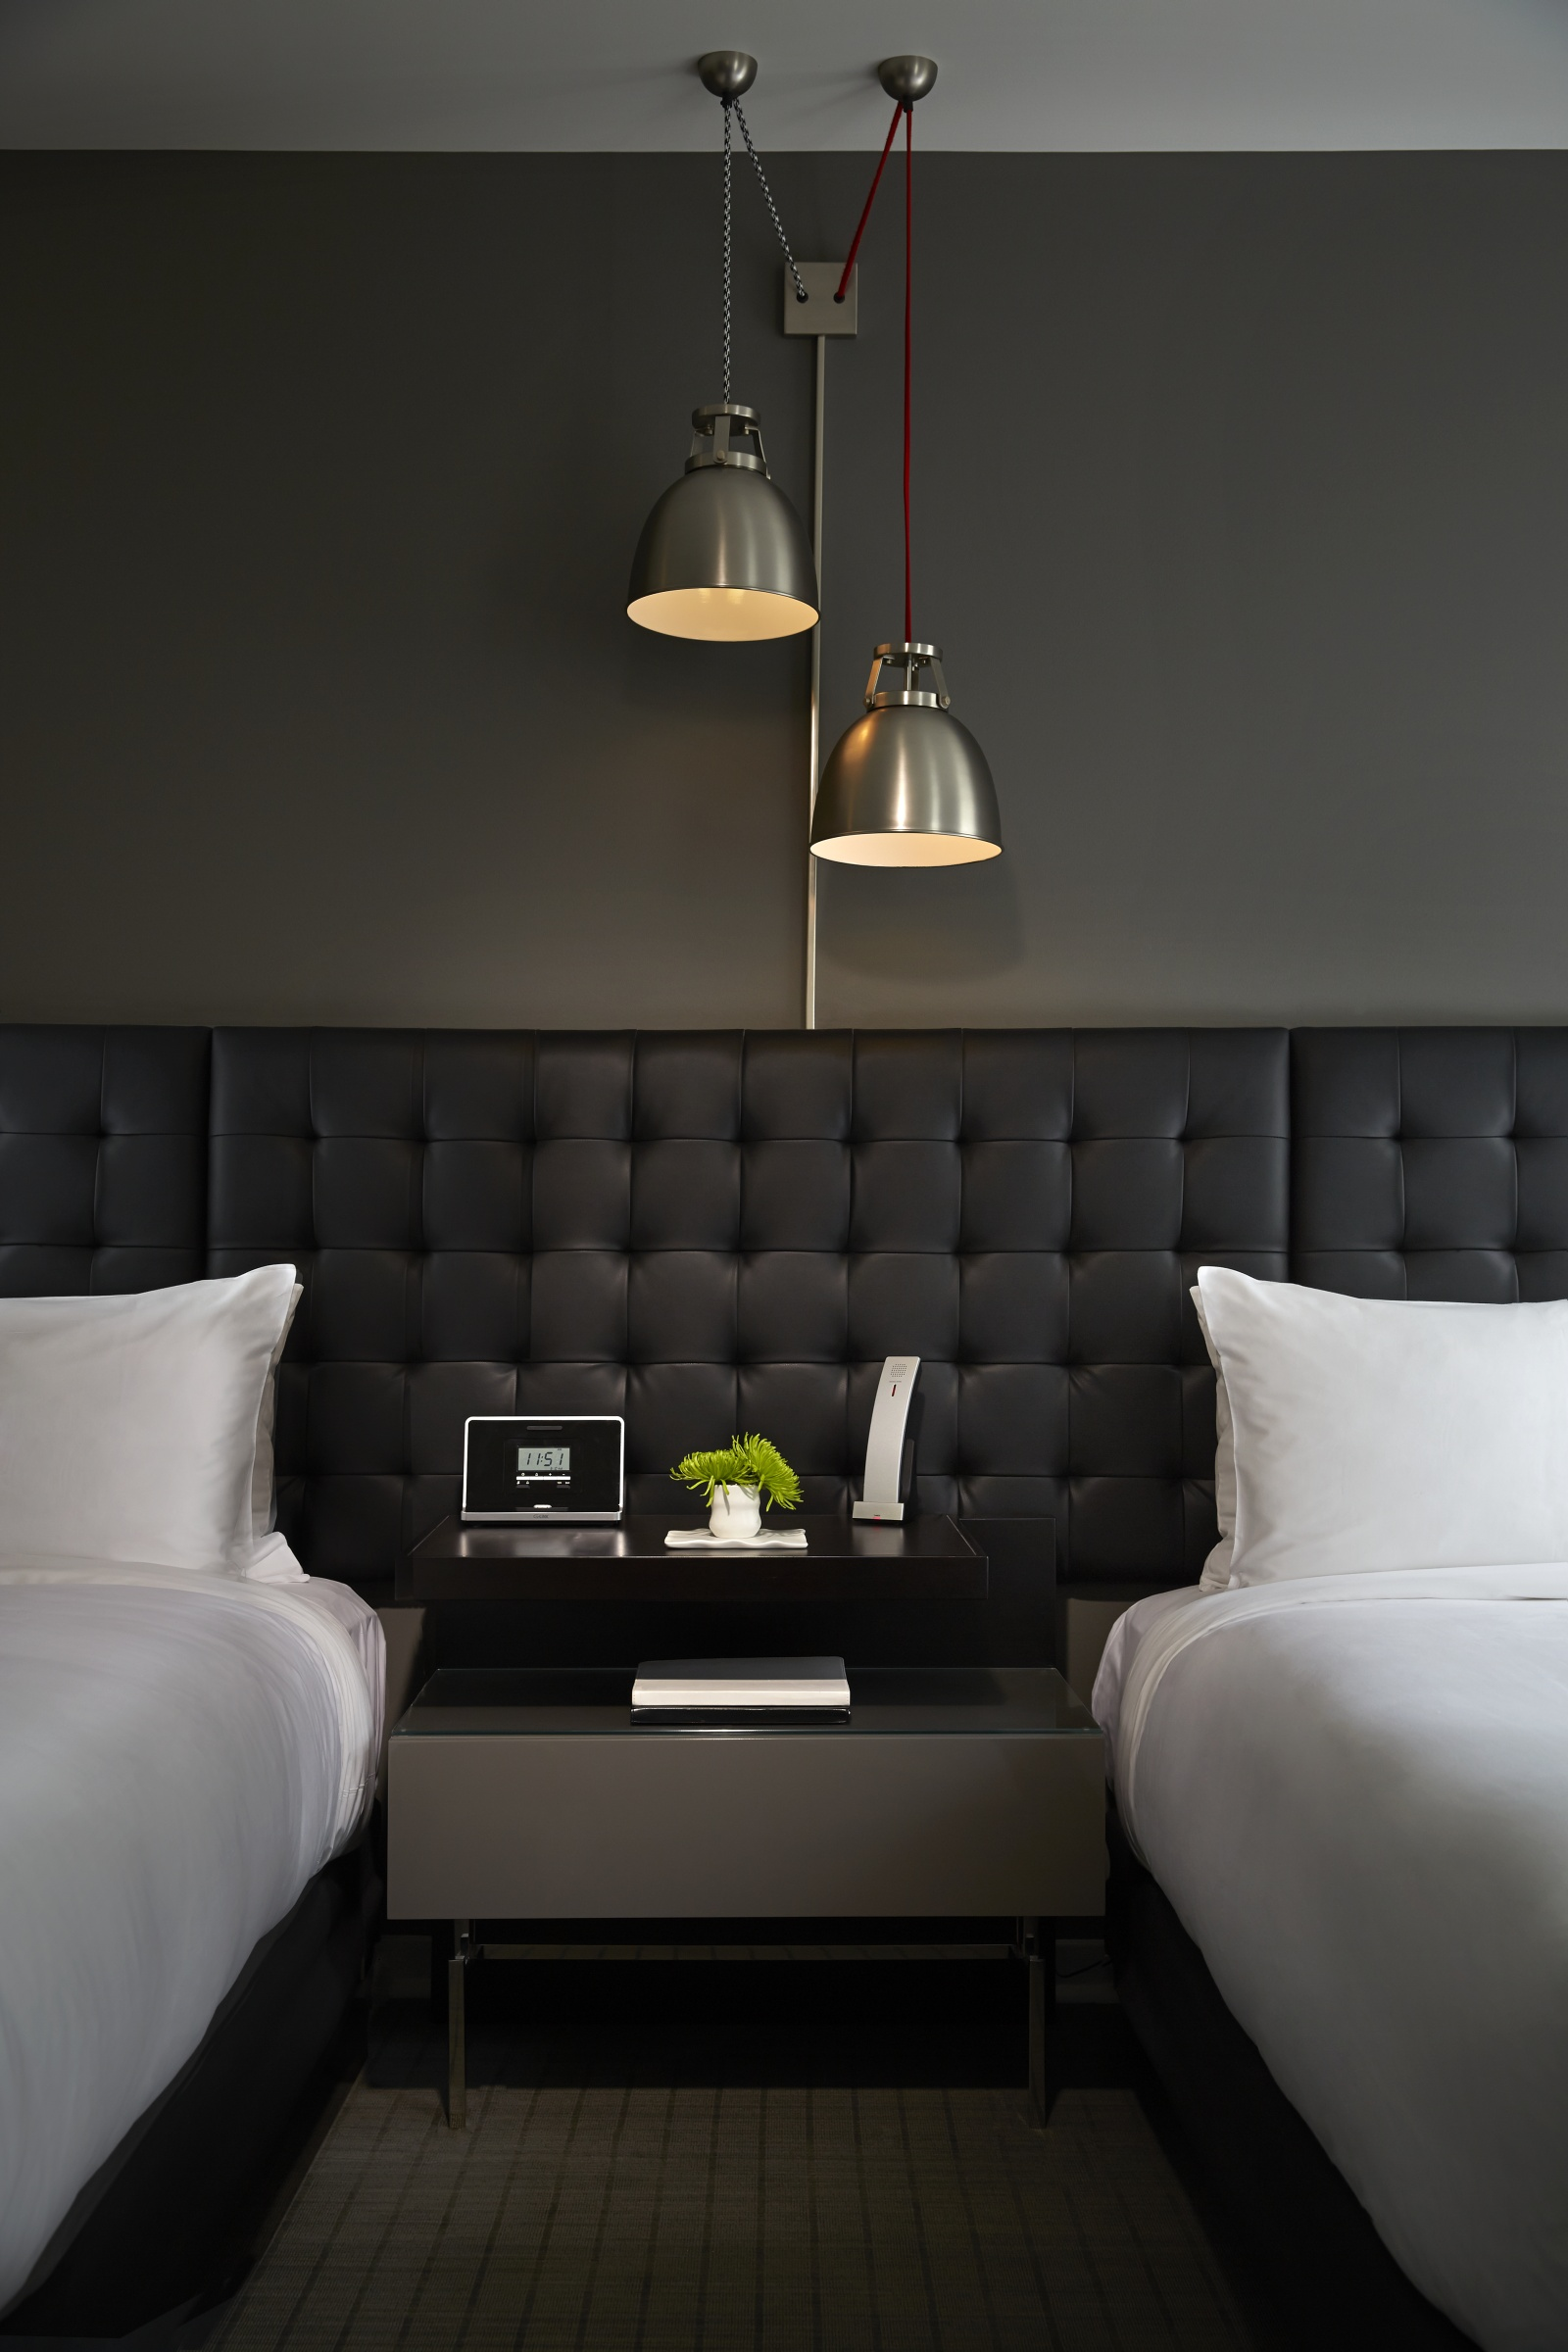 Hotel Room Designs: Hotel Zetta San Francisco